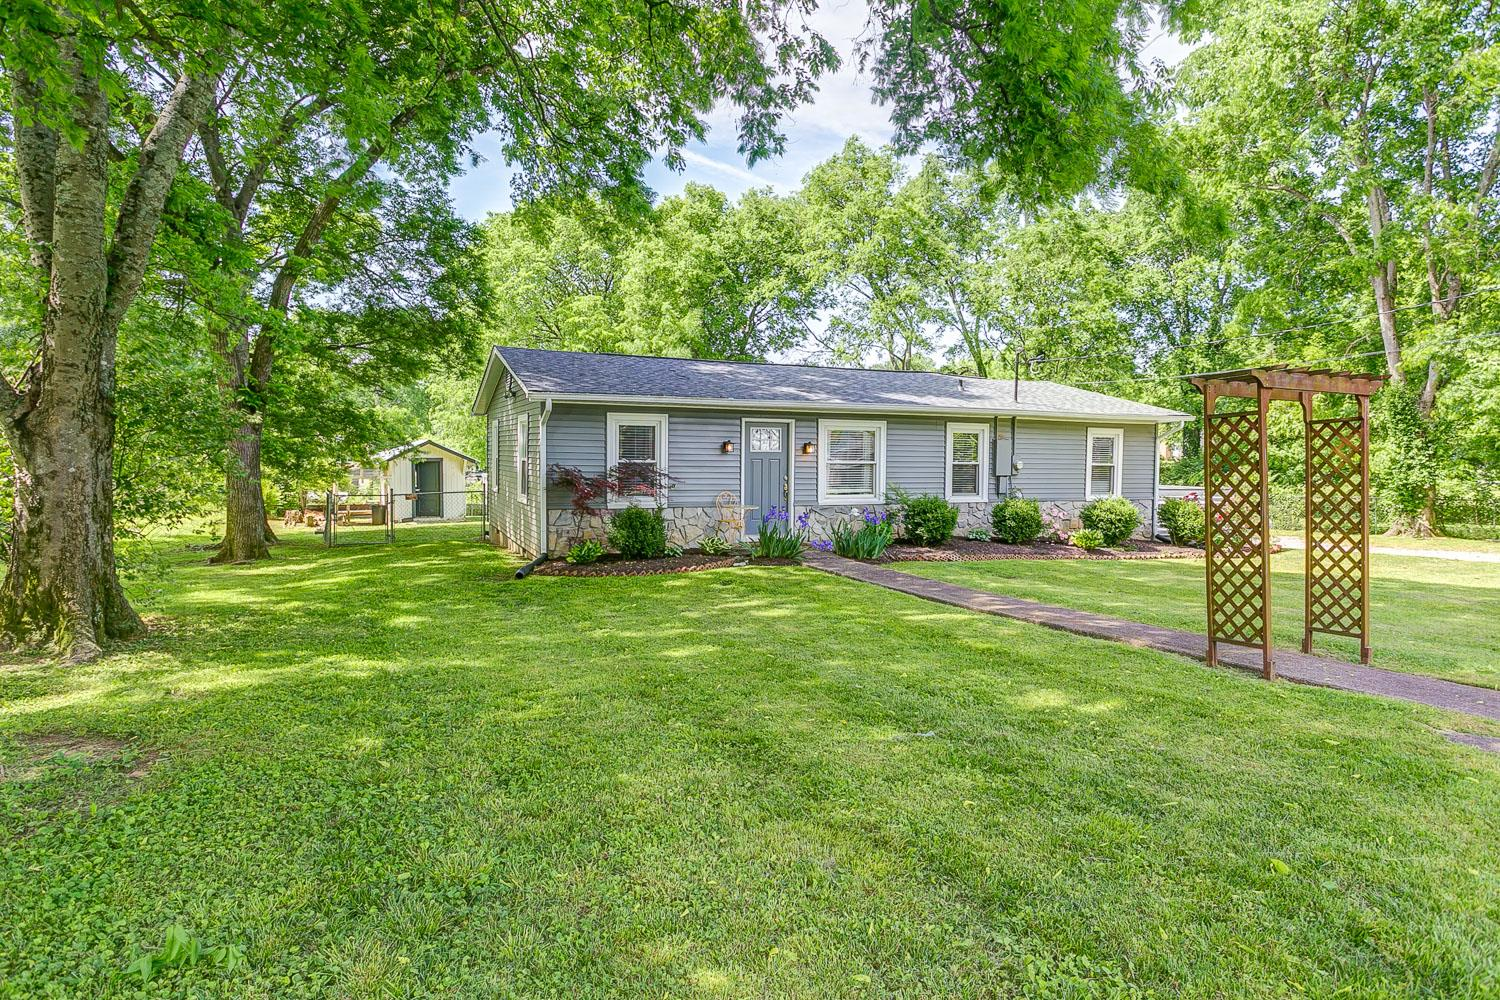 103 Plumlee Ct, Hendersonville in Sumner County County, TN 37075 Home for Sale